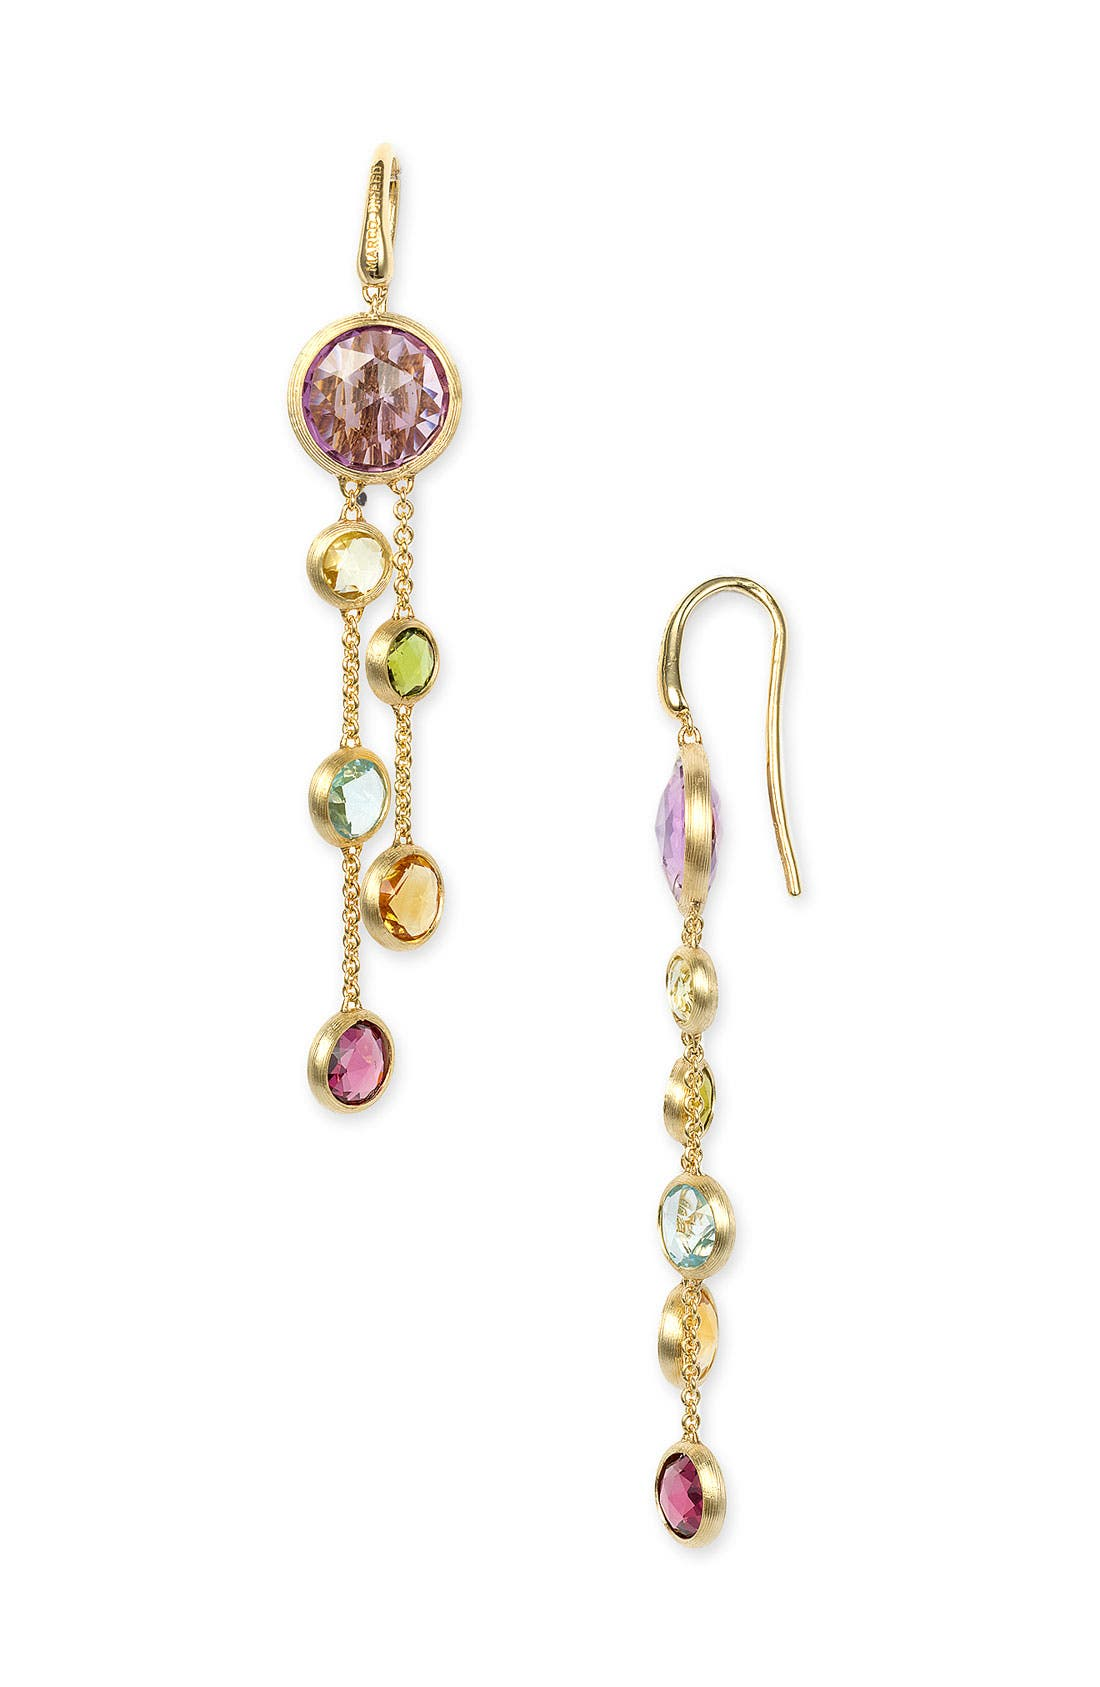 Main Image - Marco Bicego 'Mini Jaipur' Double Strand Earrings